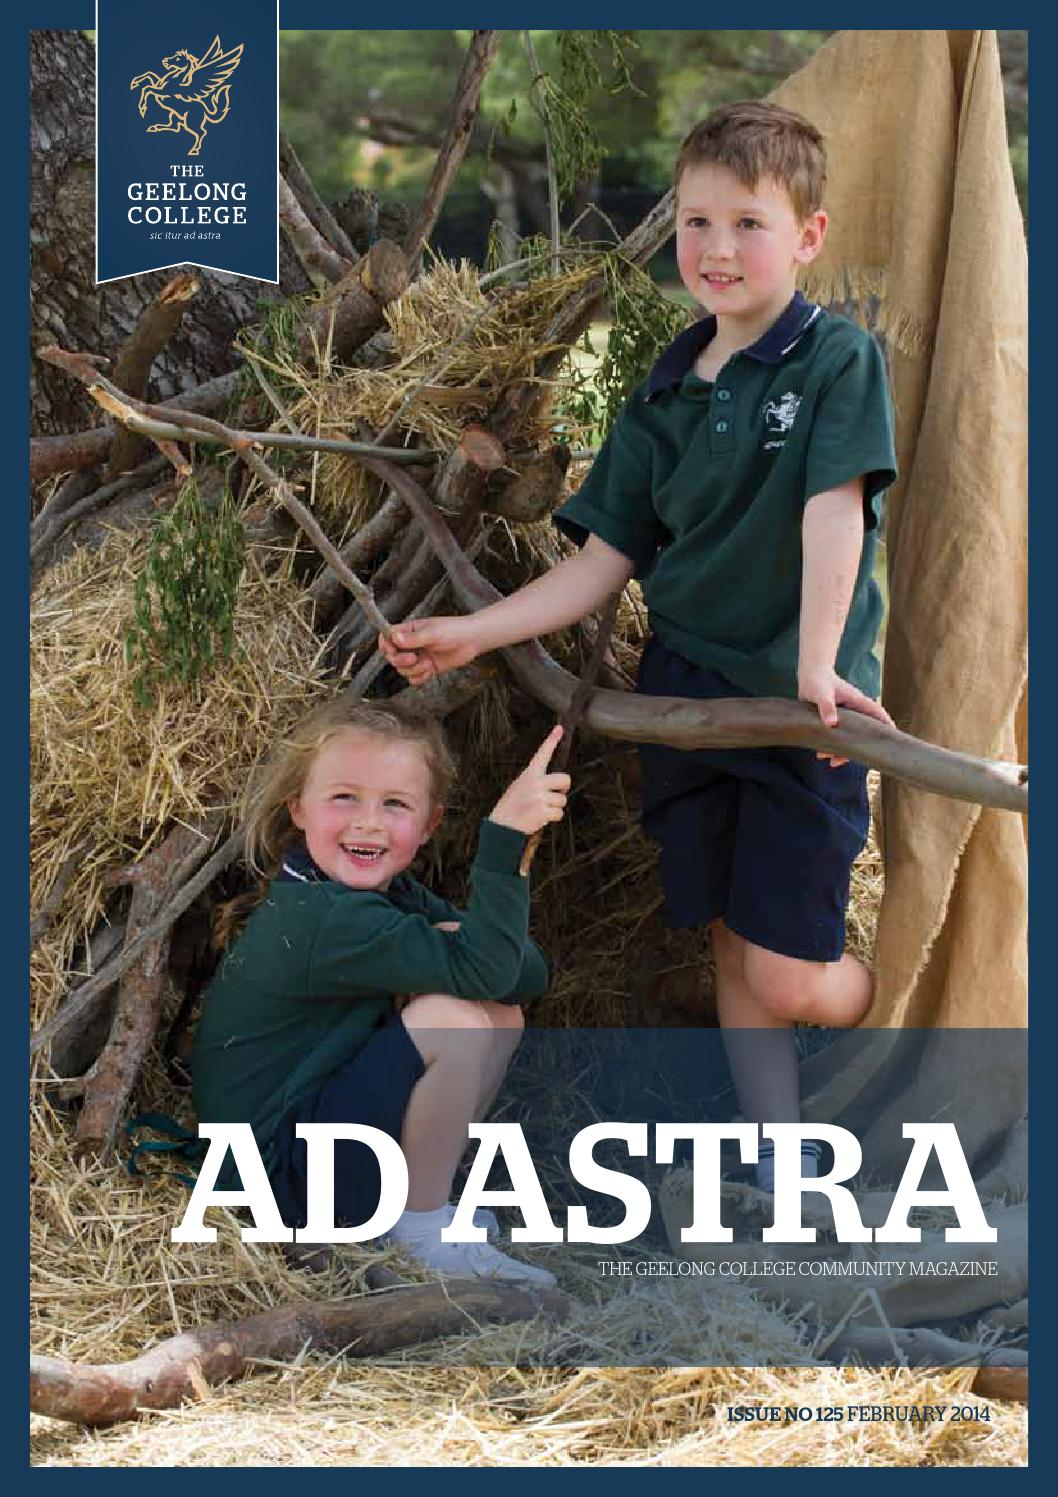 Ad astra no.125 february 2014 by geelong college   issuu